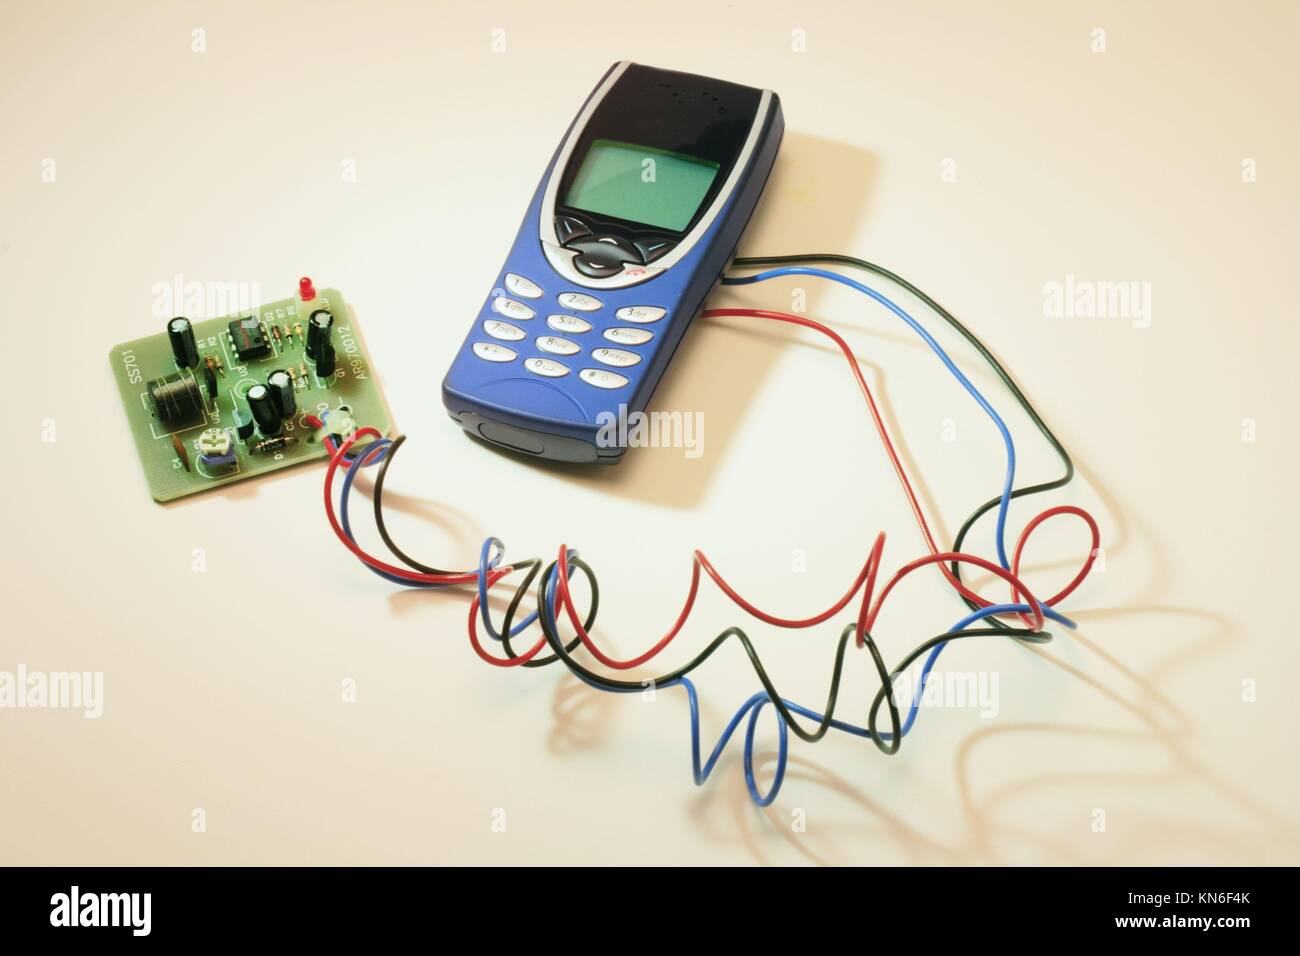 Electronic Componets Stock Photos Cell Phone Circuit Boards Suppliers And Mobile With Board Image